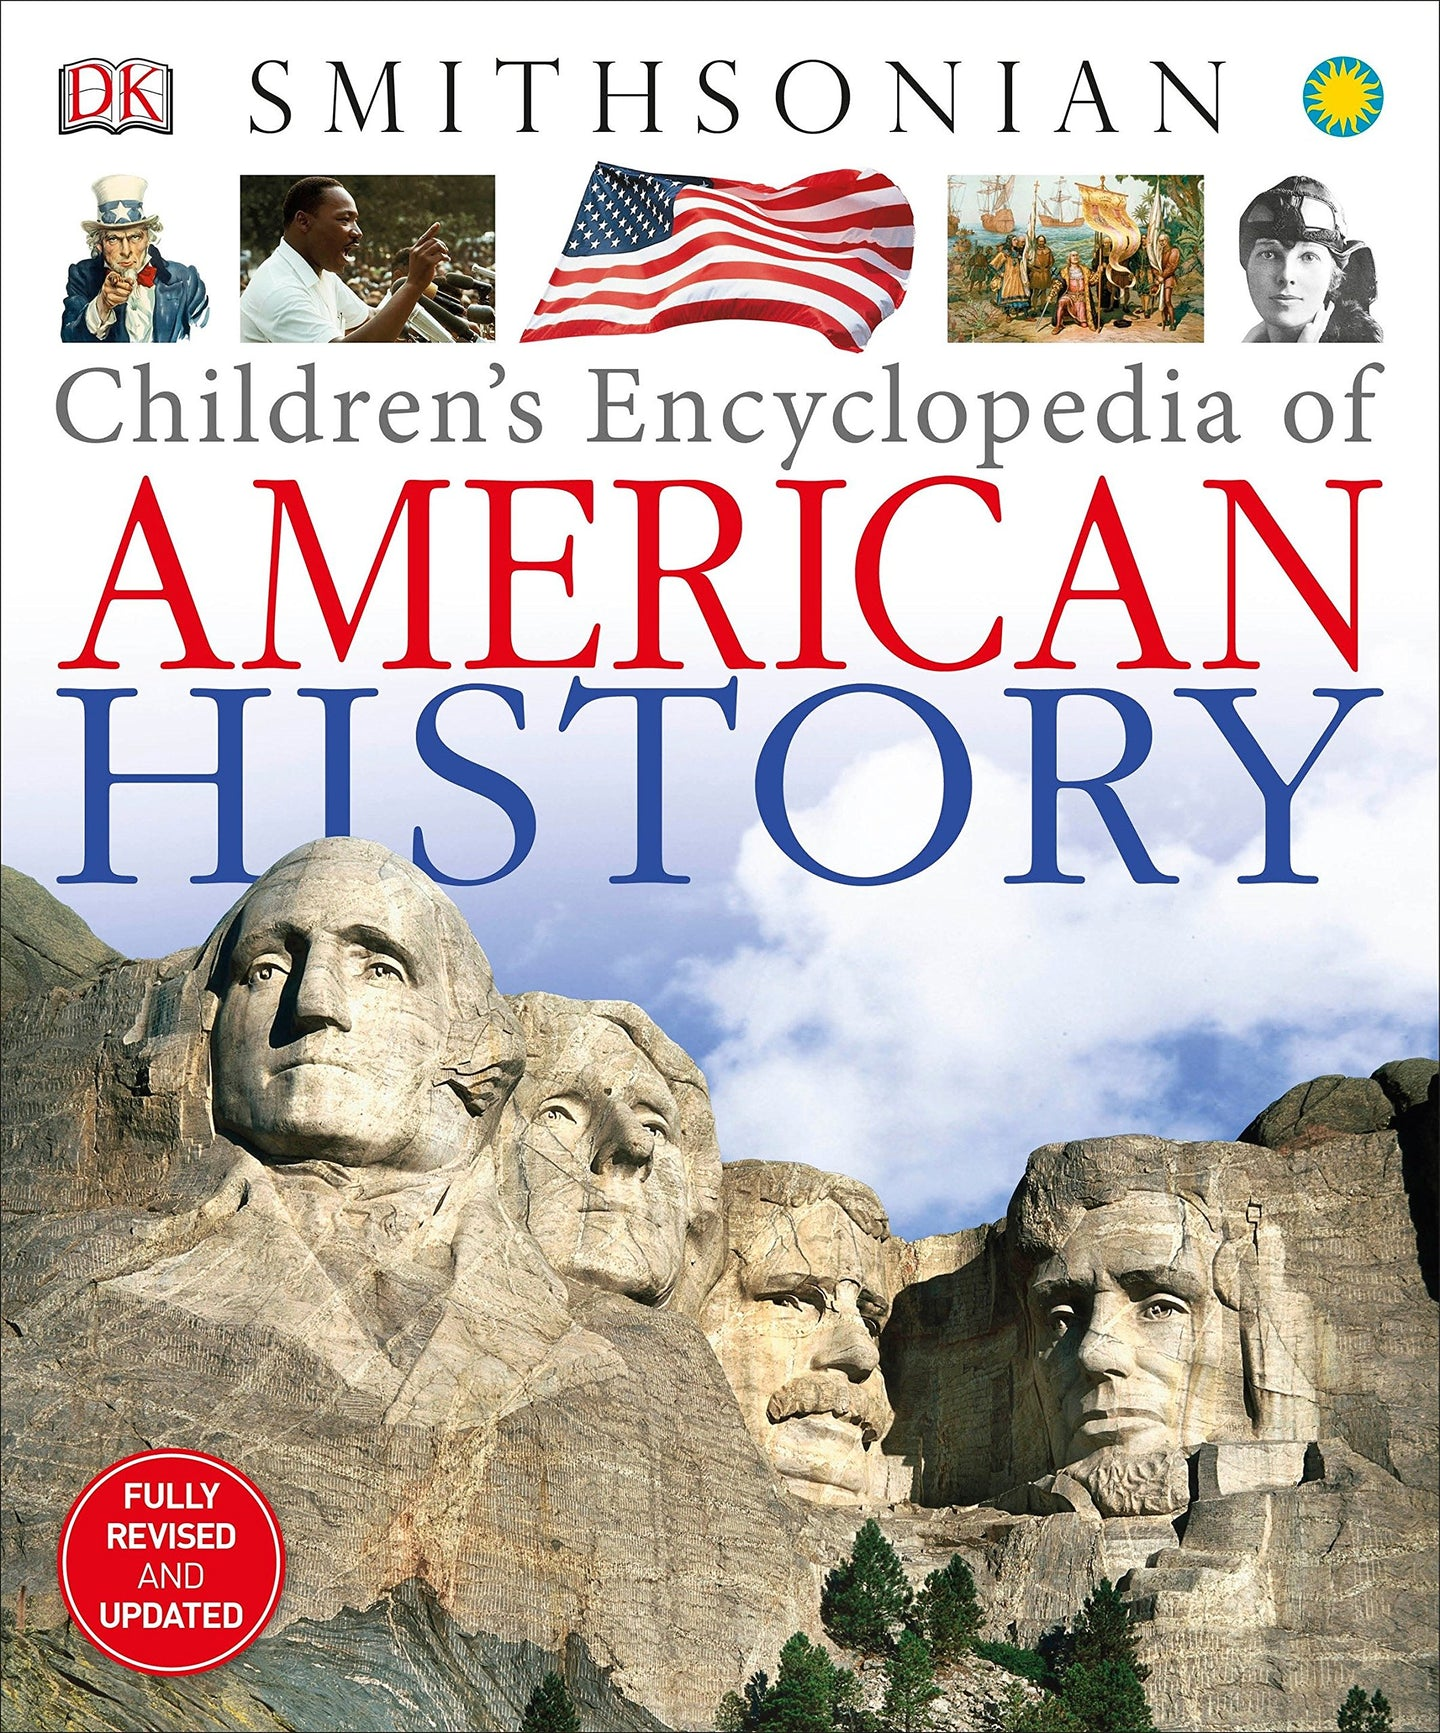 Children's Encyclopedia of American History DK (Used -Worn/Acceptable) - Little Green Schoolhouse Books